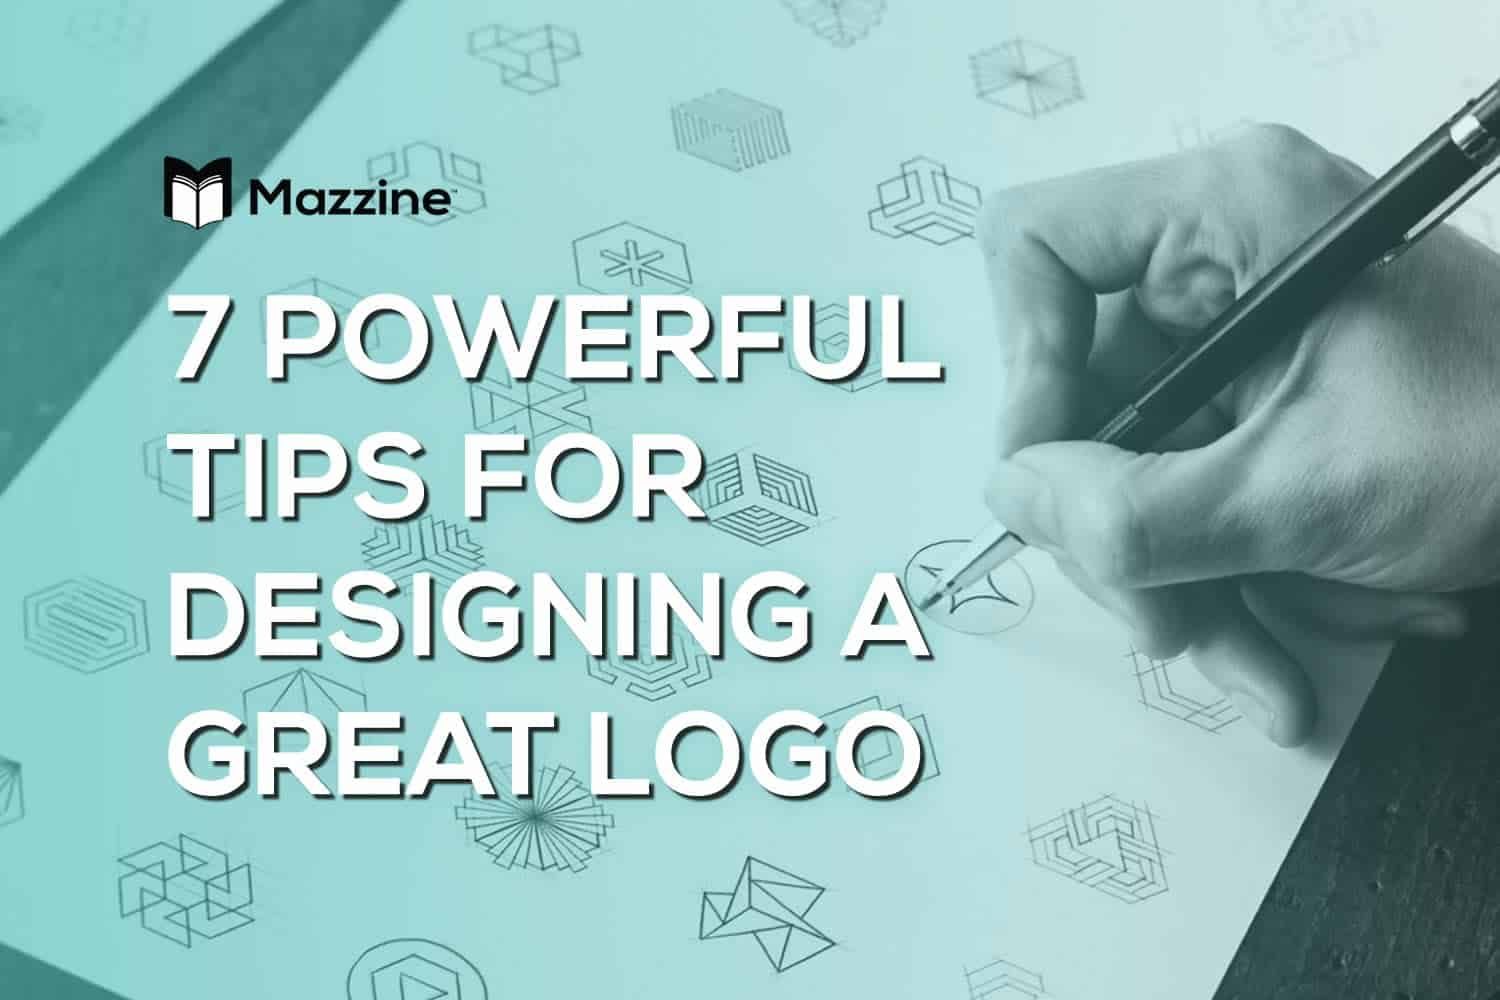 7 Powerful Tips For Designing a Great Logo